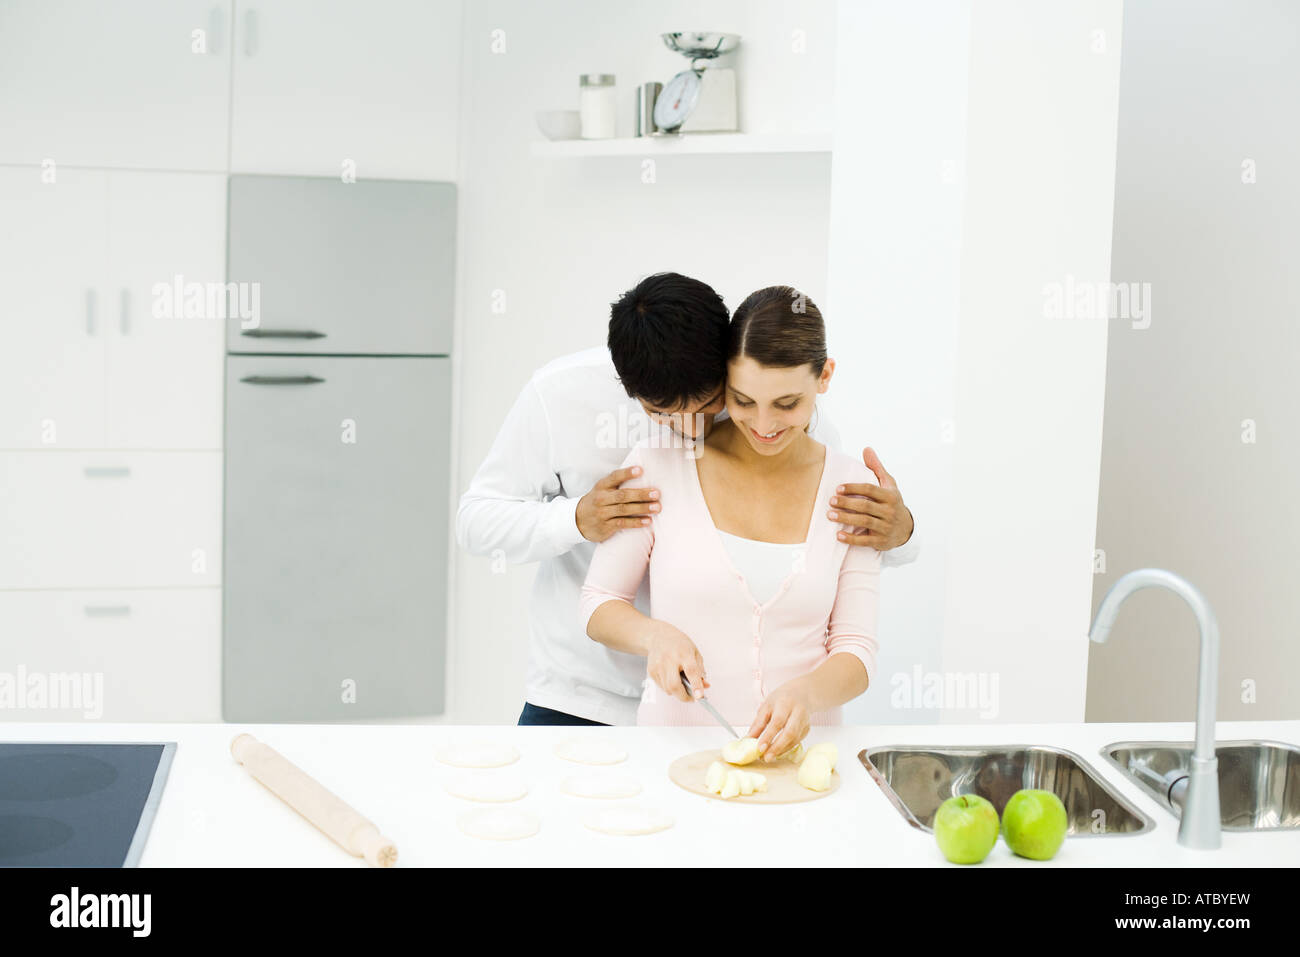 Couple standing together in kitchen, woman cutting apples, man leaning head on her shoulder - Stock Image